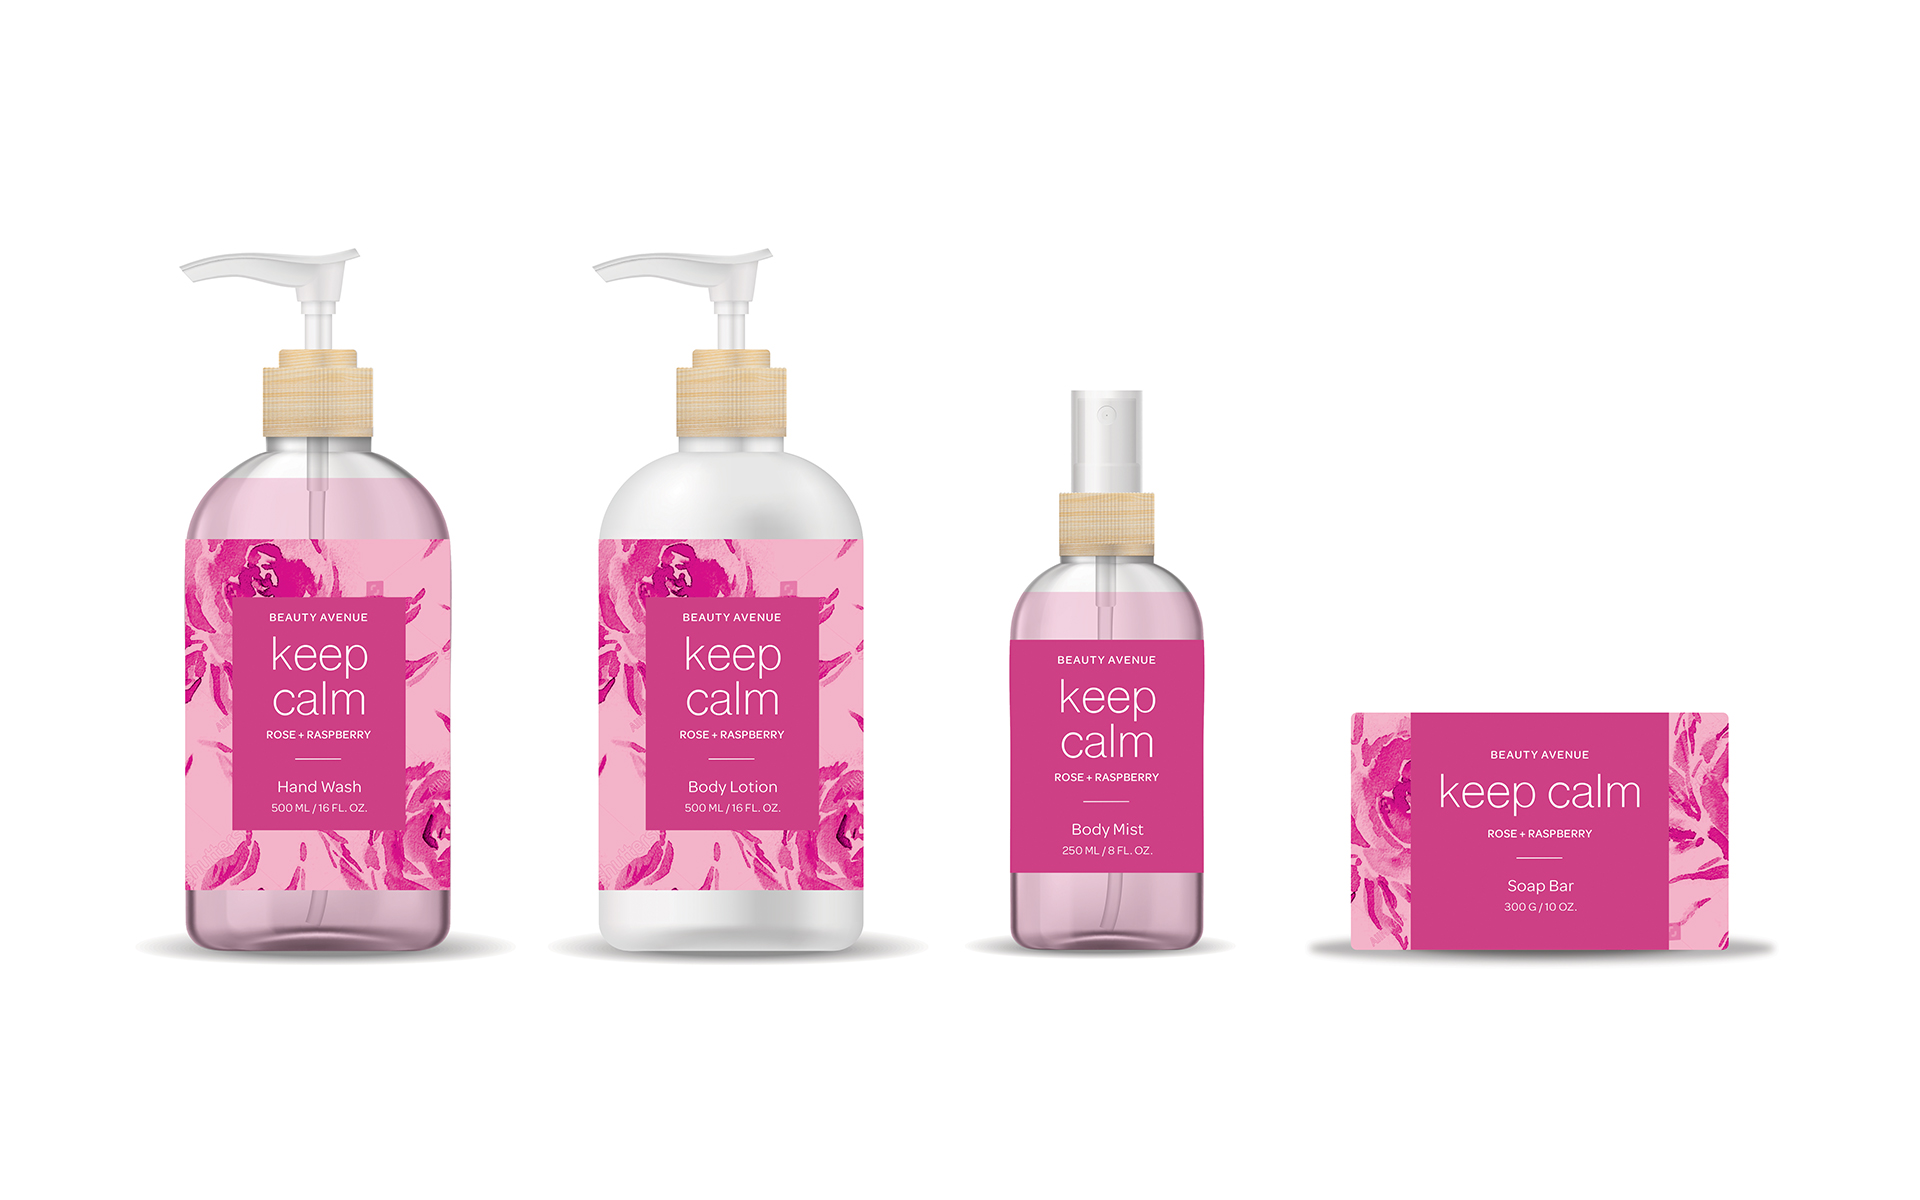 Paige Smith Portfolio Branding Packaging Project